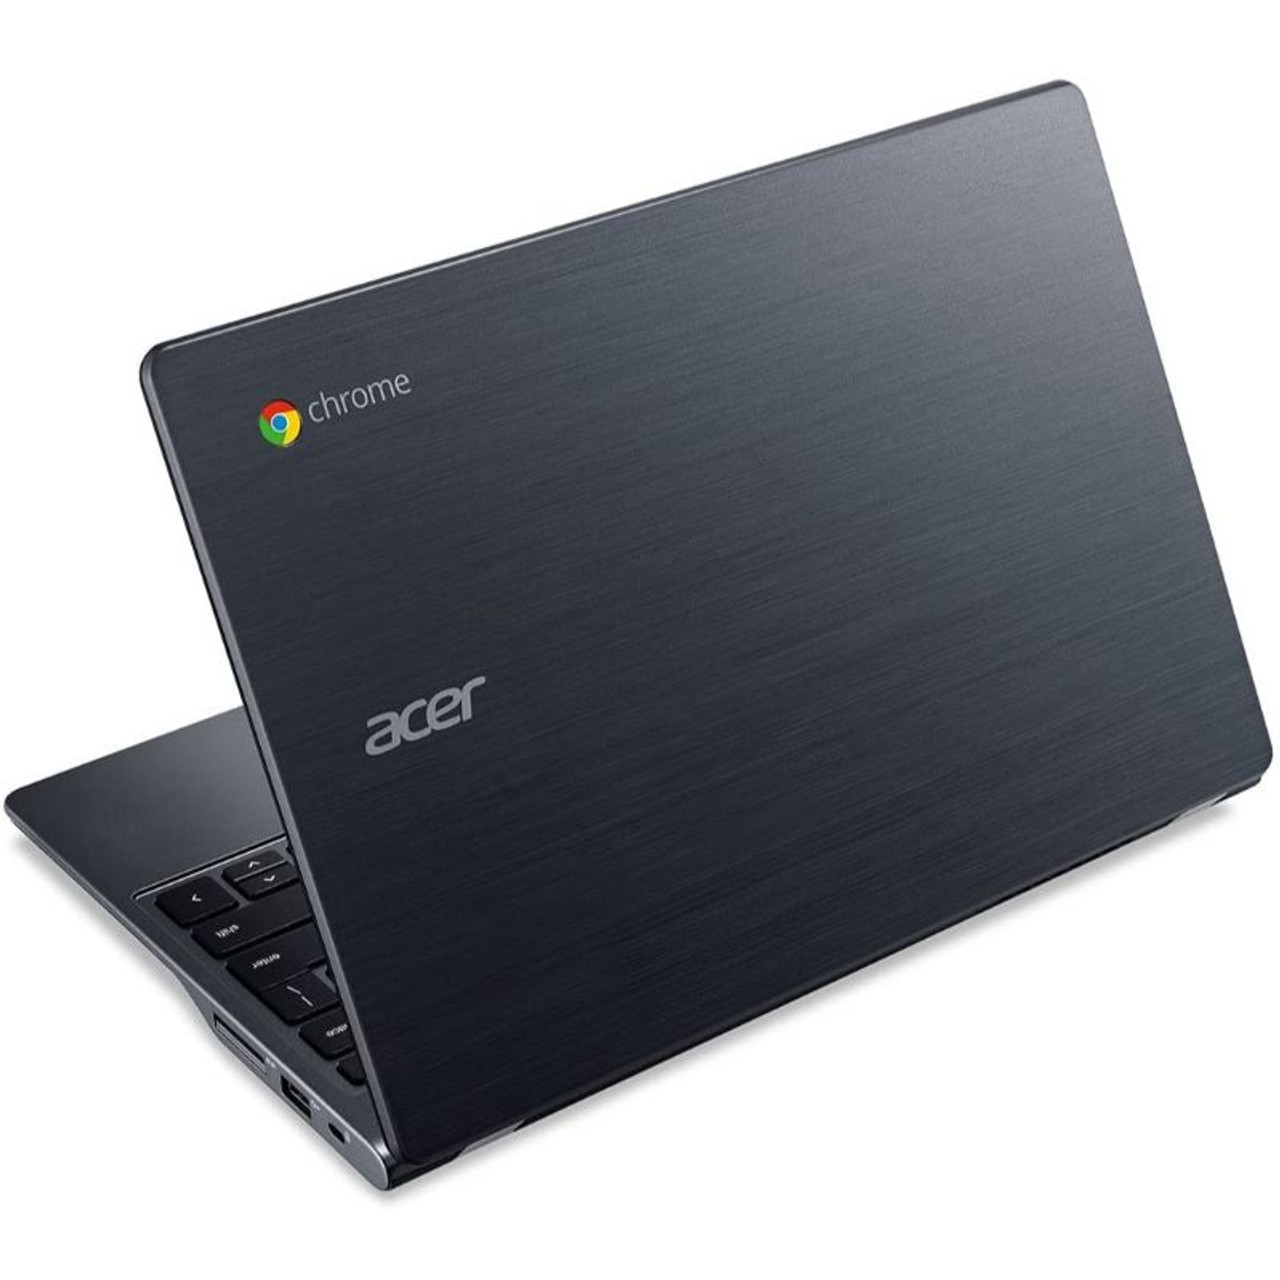 Acer Chromebook 11 C740 with 2GB, 16GB SSD